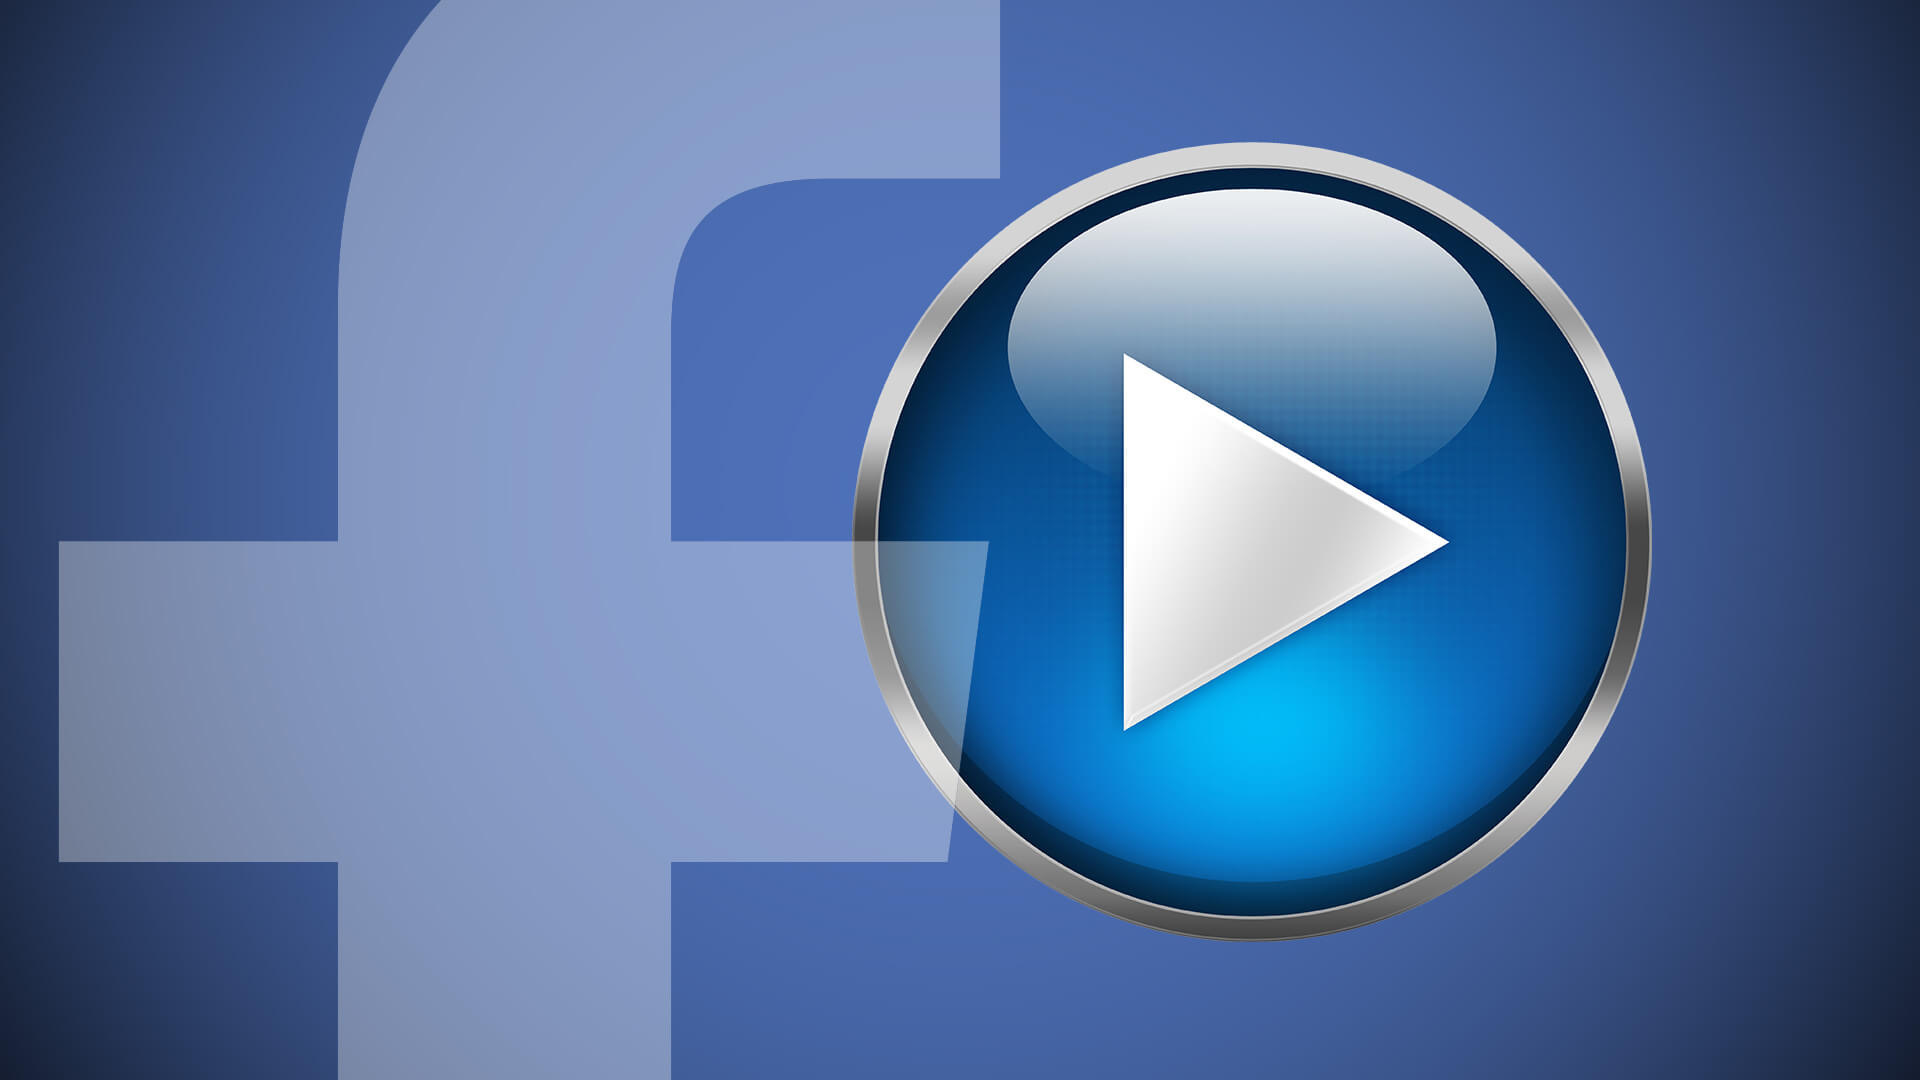 Opinion: The Problem With Facebook Video